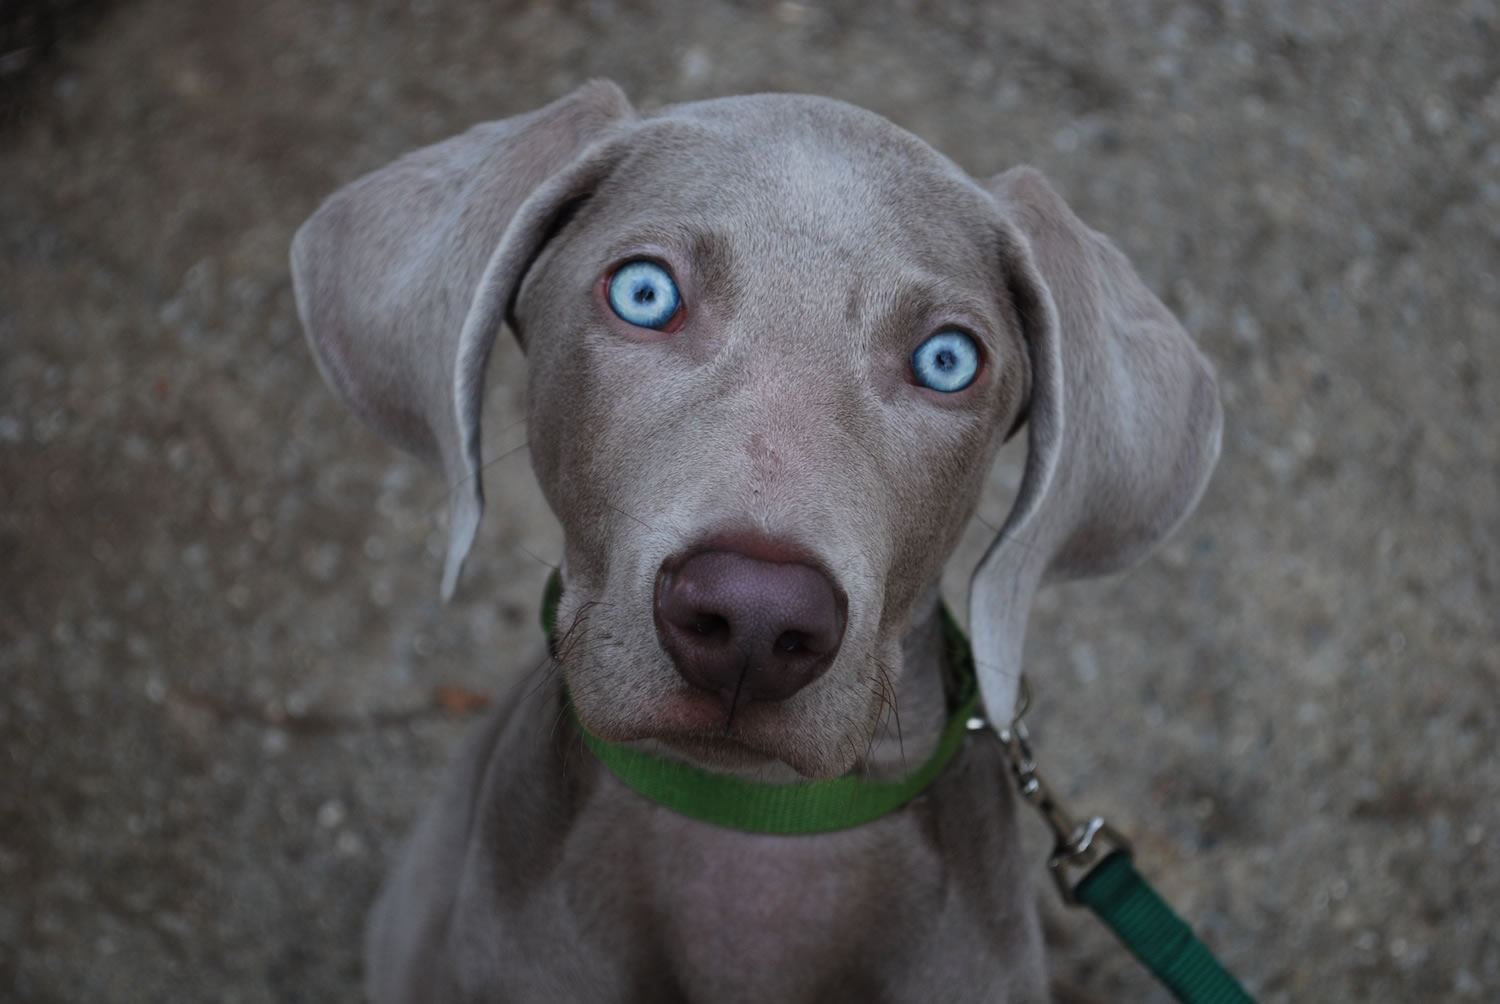 Weimaraner - My Doggy Rocks